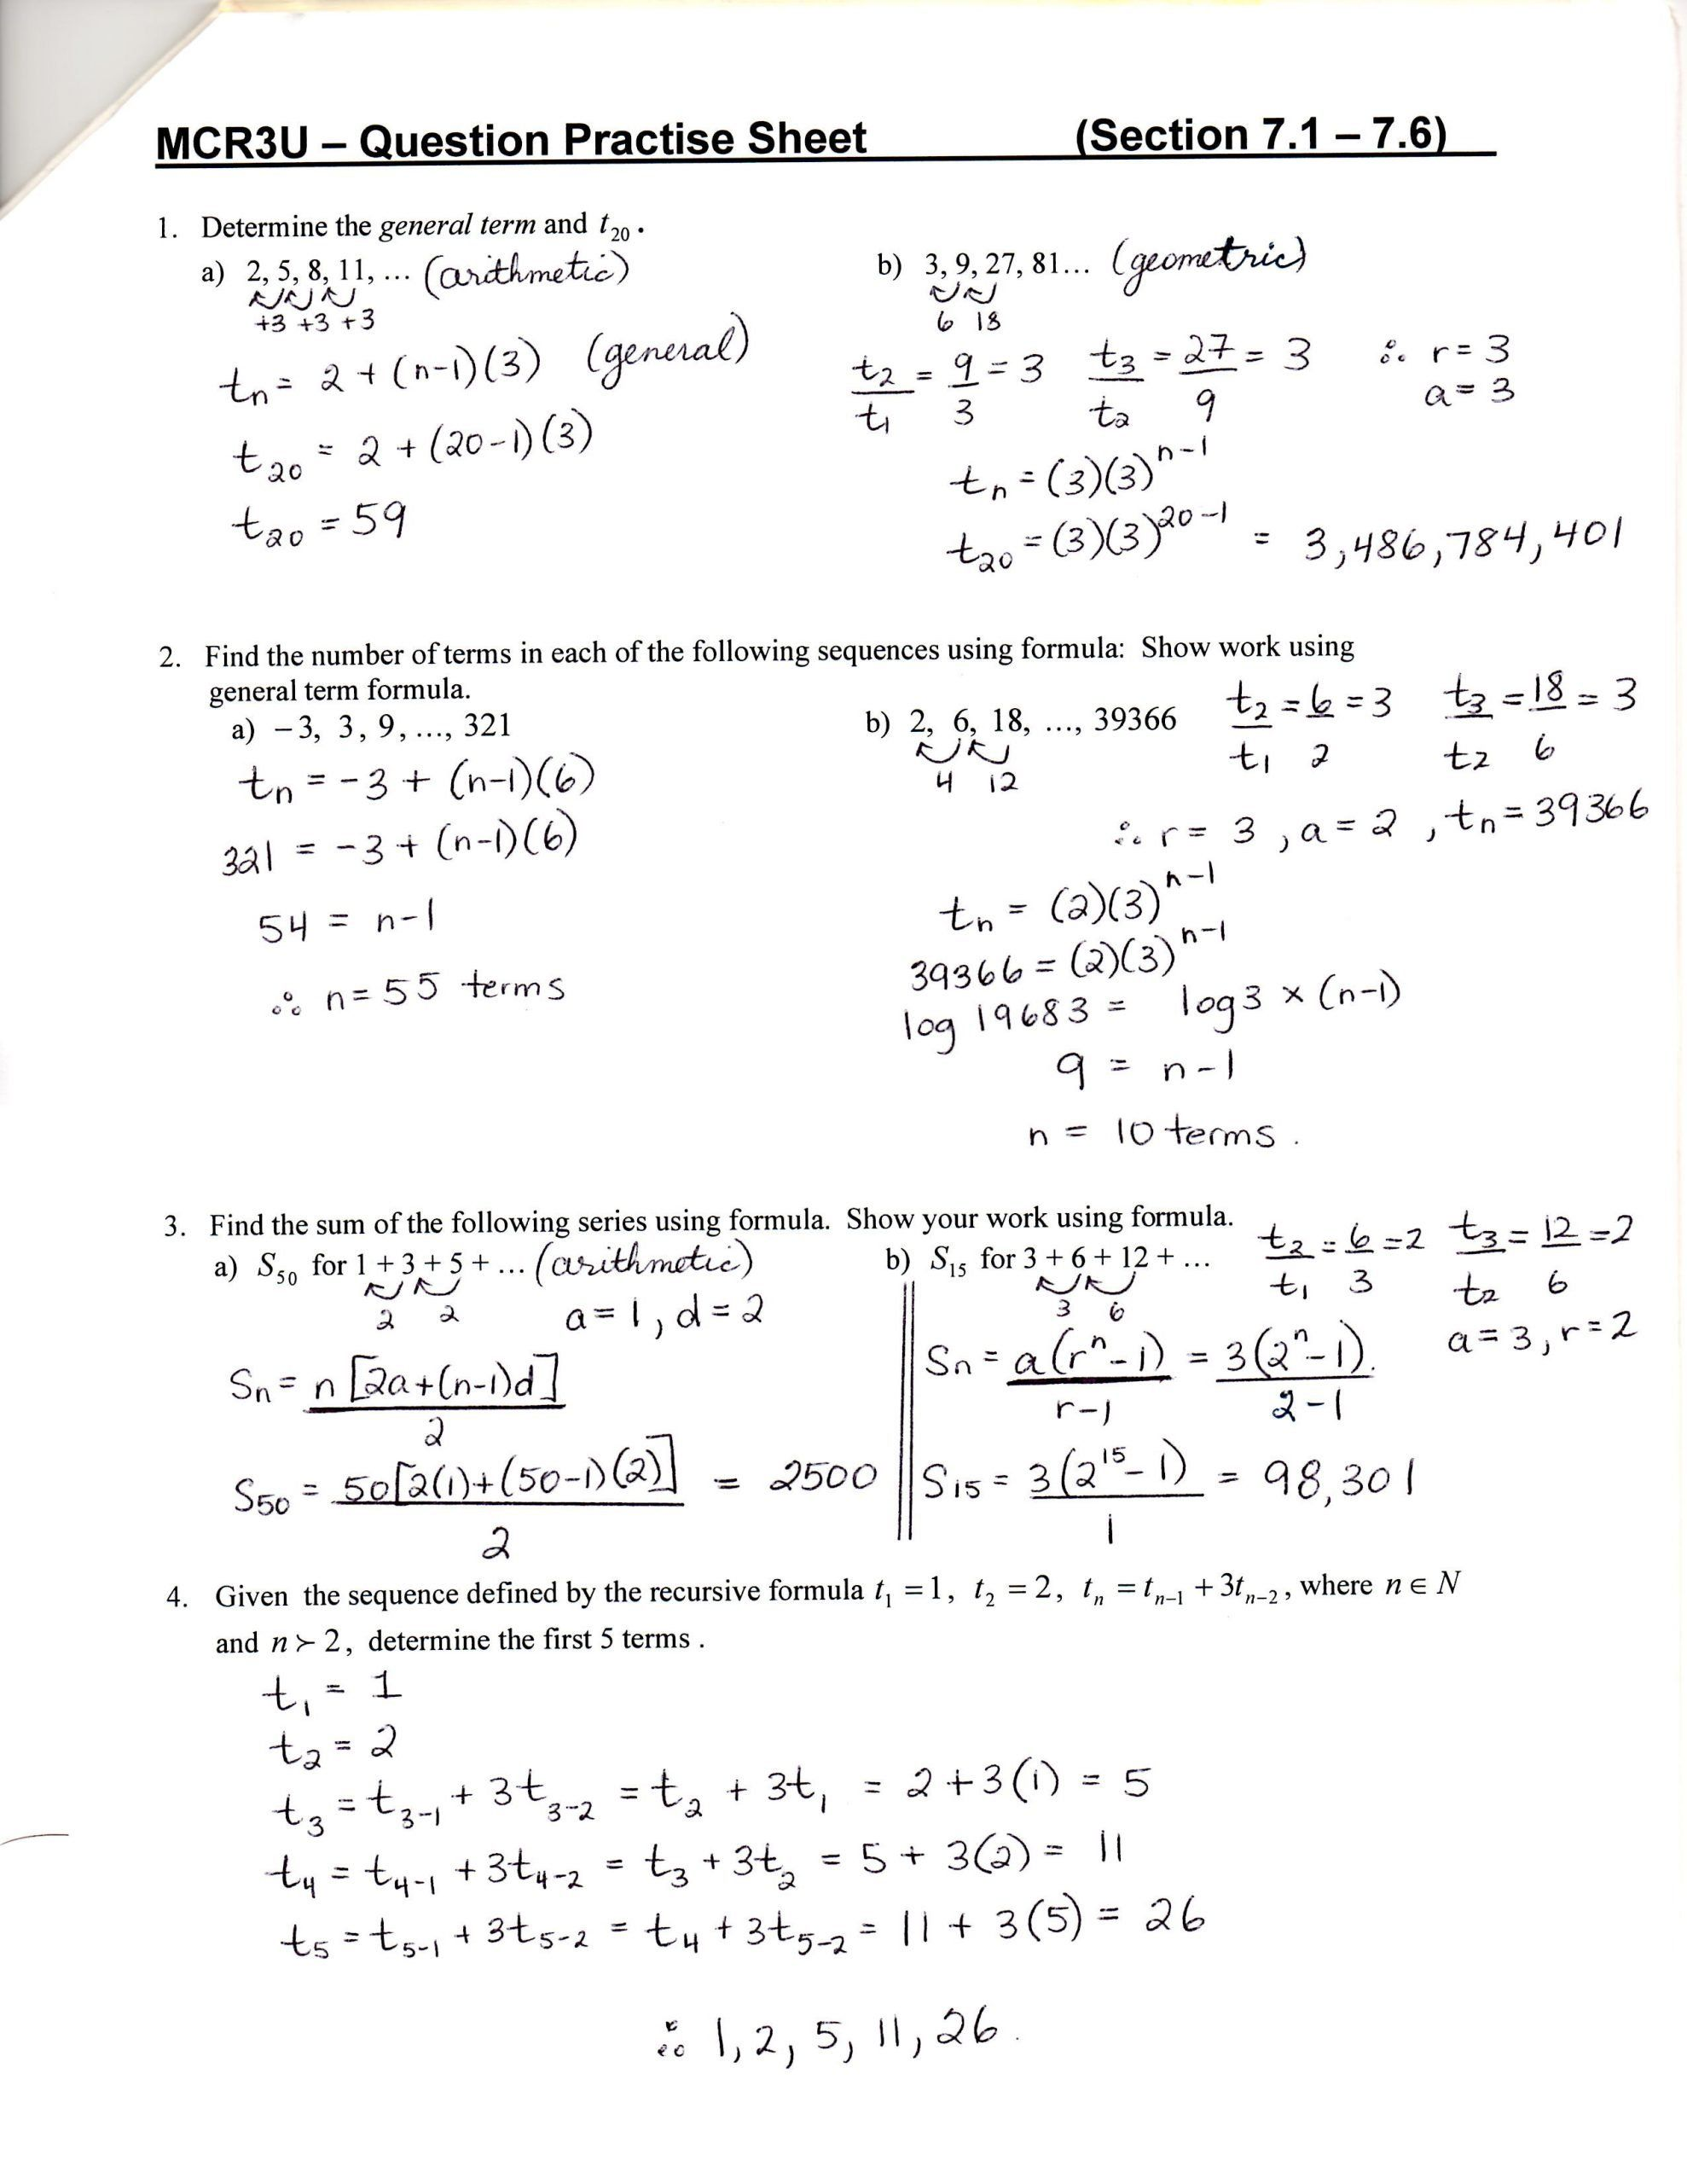 Sequences And Series Worksheet Answers Unit 7 8 Sequences Series And Financial Applicatio In 2020 Text Features Worksheet Sequence And Series Word Problem Worksheets